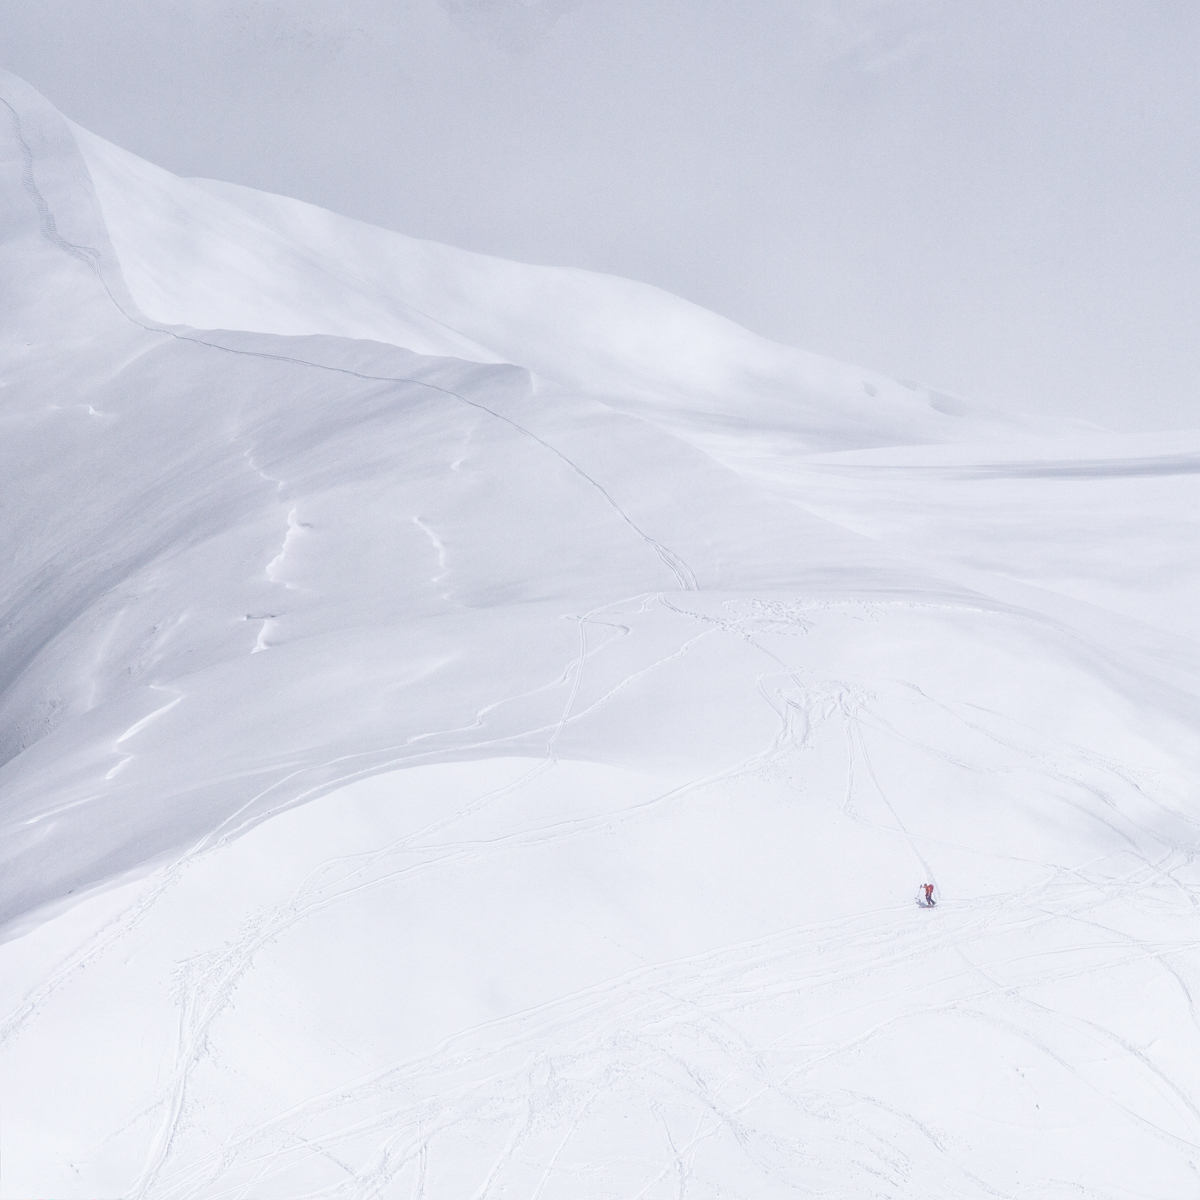 The lone skier